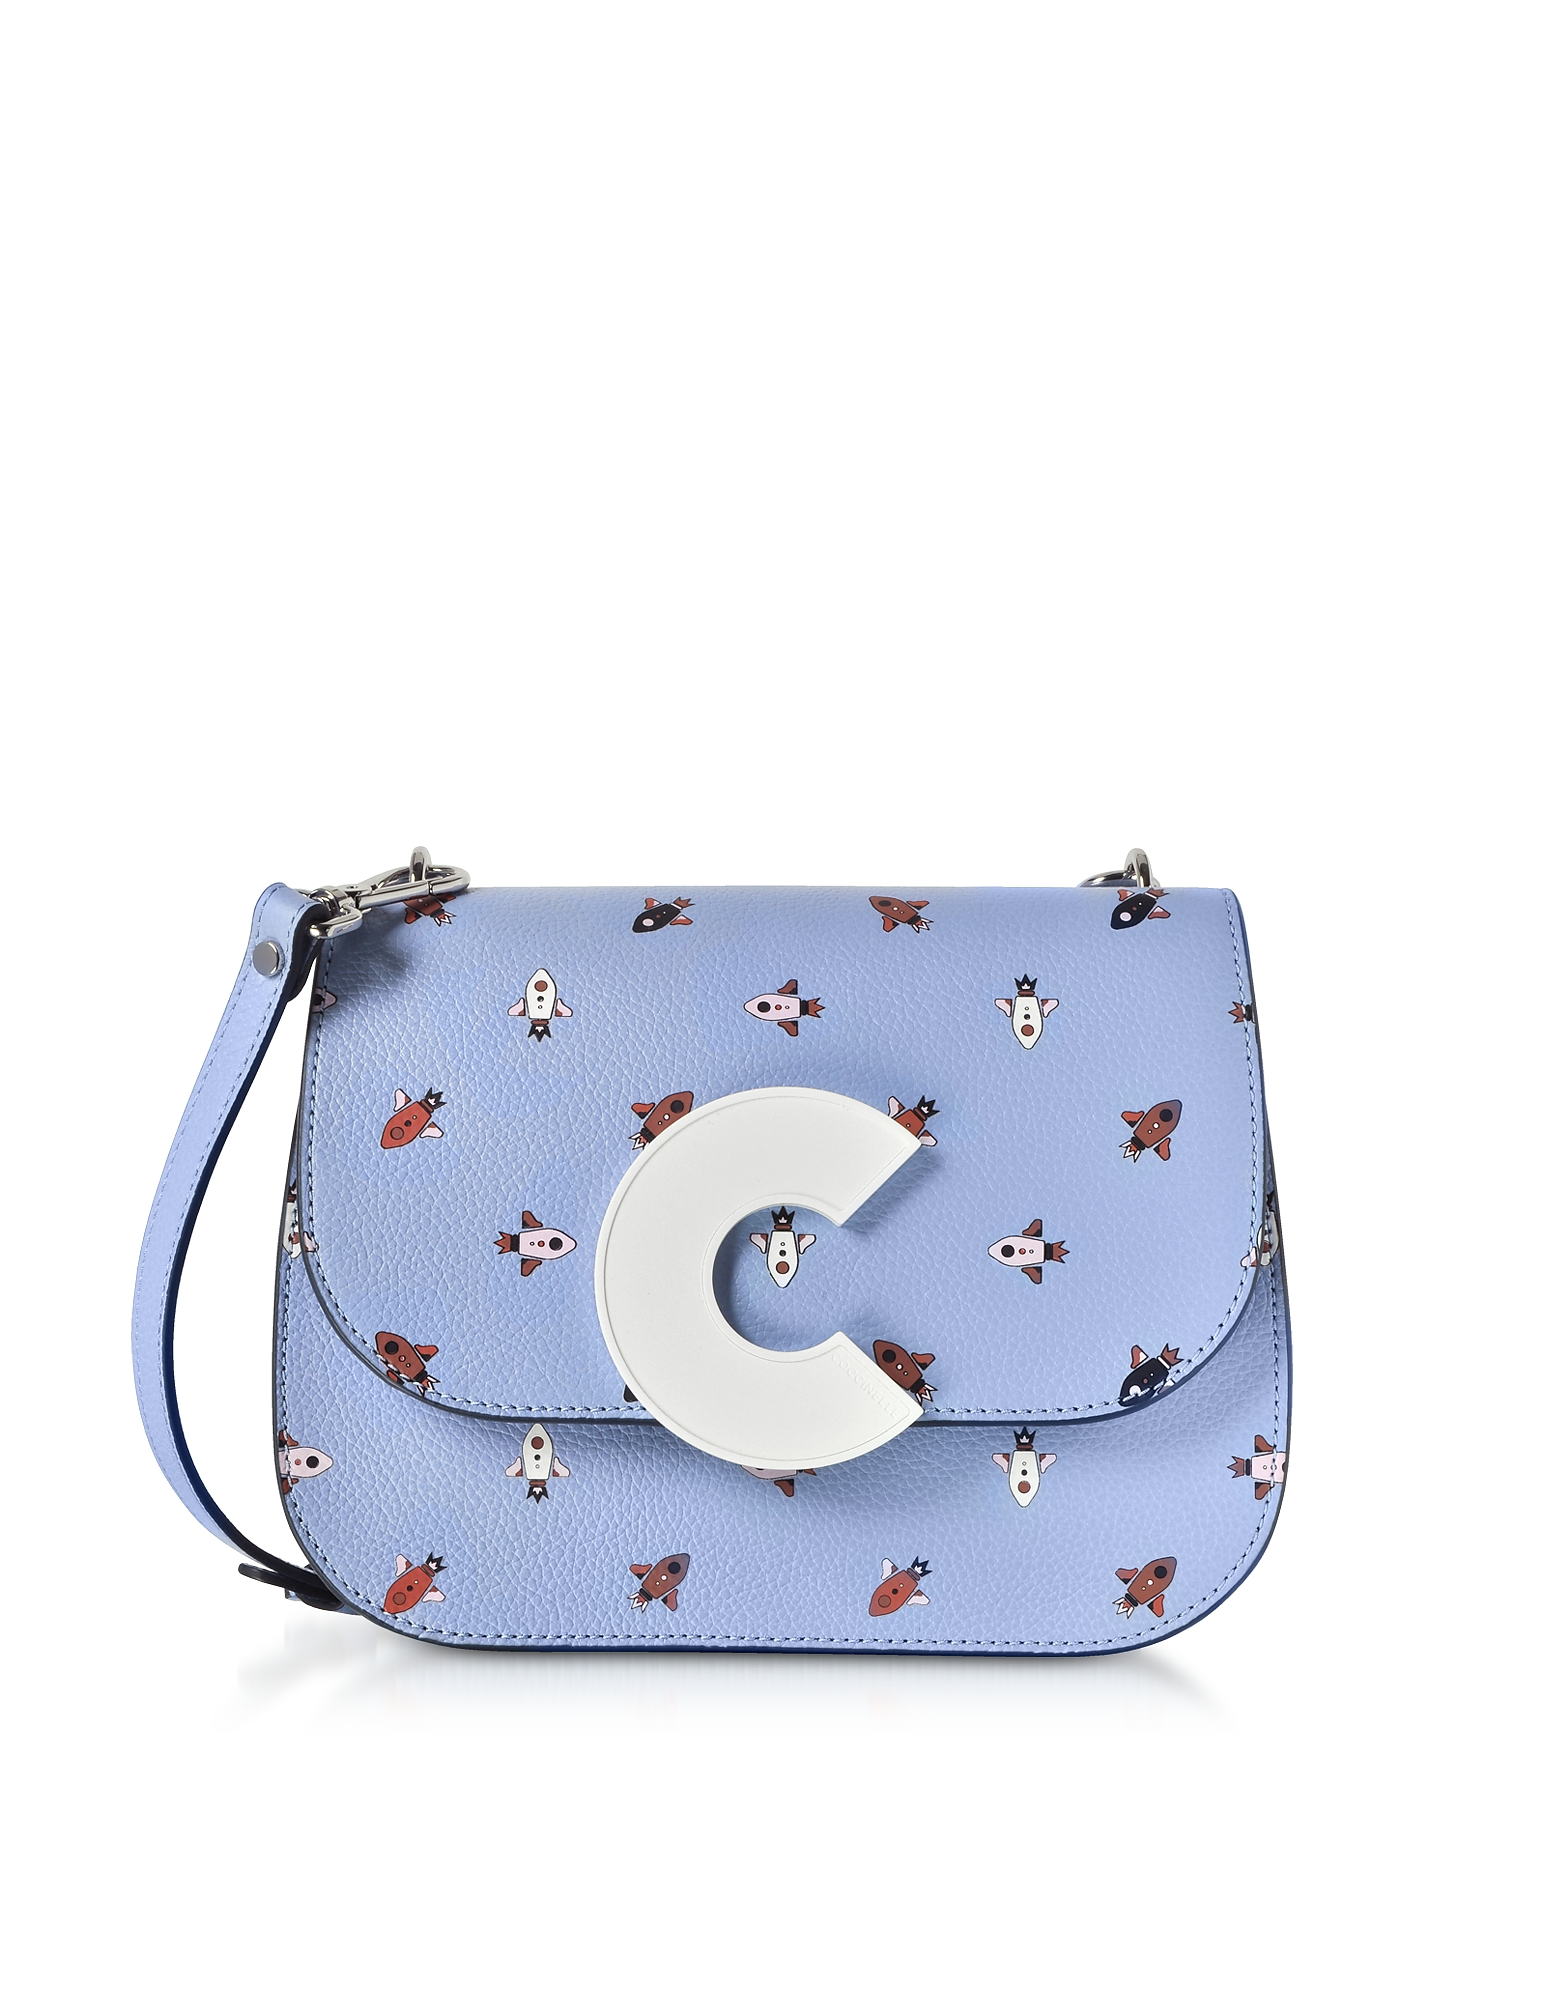 Craquante Razzo Printed Leather Shoulder Bag